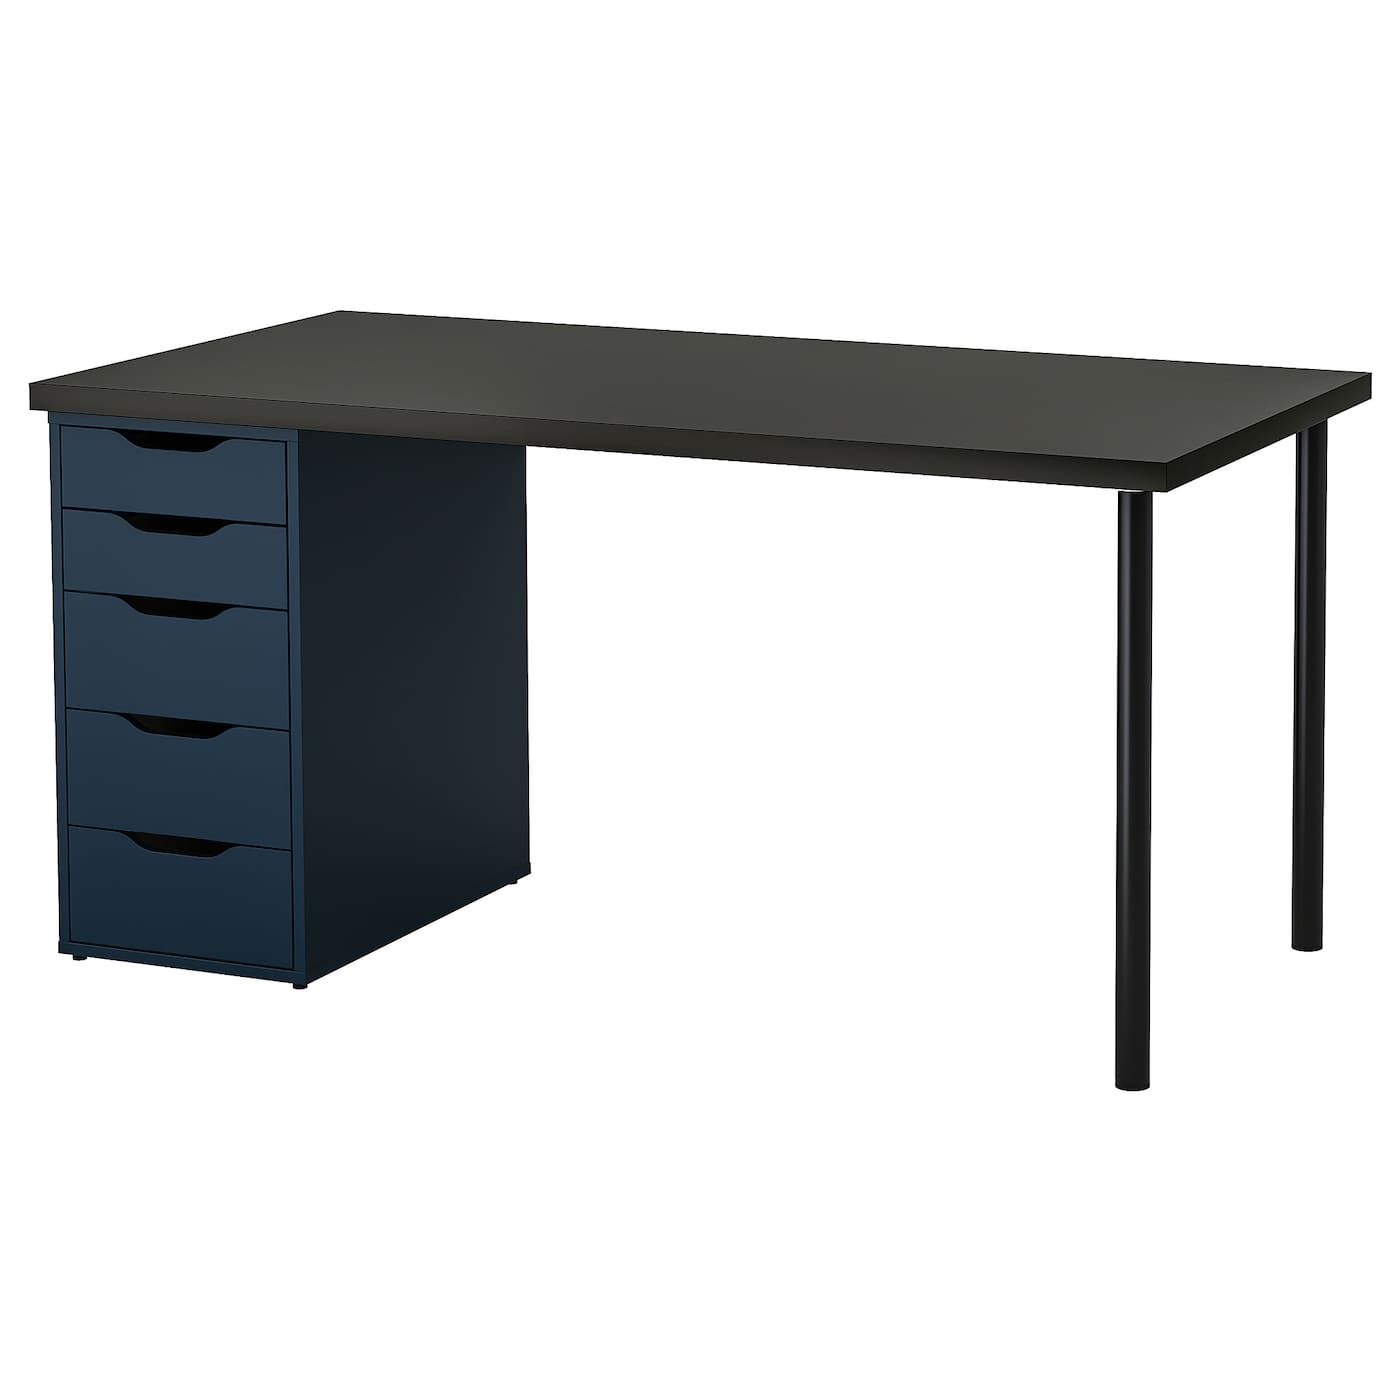 Linnmon Alex Table Black Brown Blue 59x29 1 2 Shop Online Or In Store Ikea Ikea Black And Brown Grey Desk